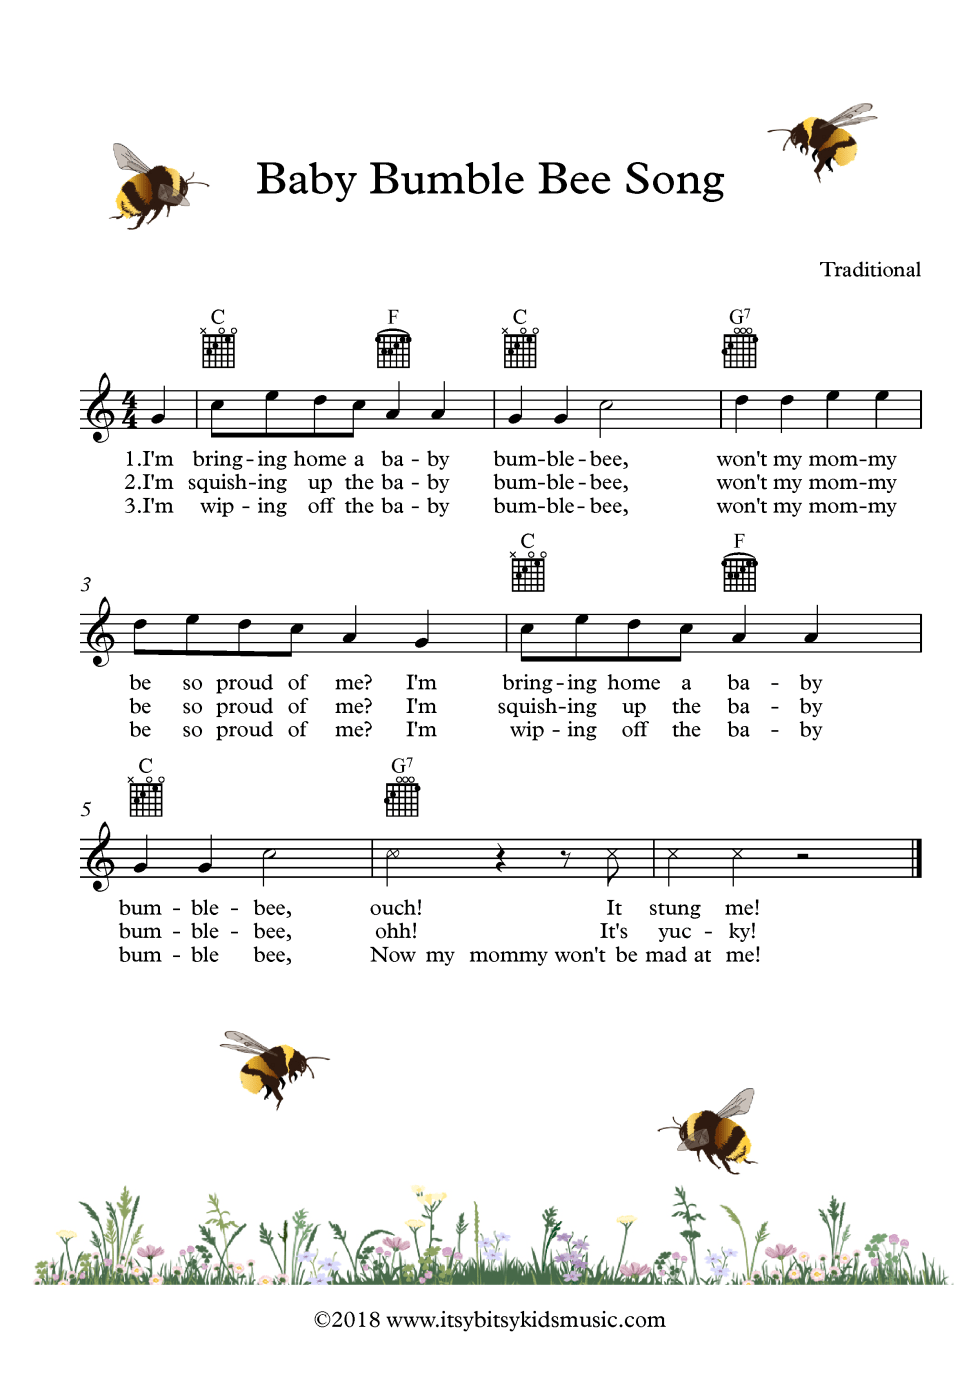 Baby Bumblebee Song Sheet Music With Chords And Lyrics